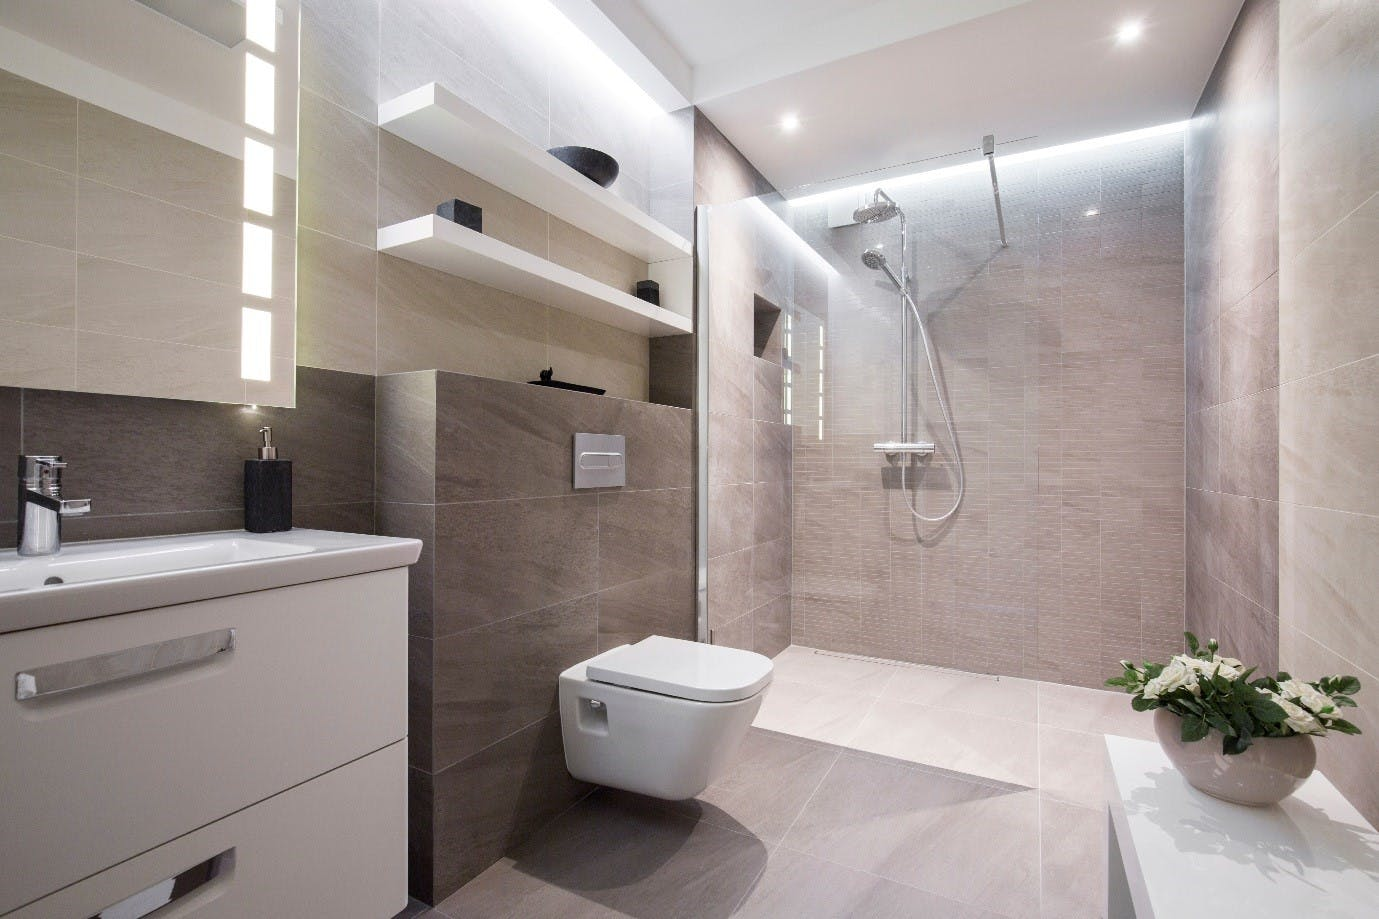 Shower Room Ideas | Small Shower Room | More Bathrooms